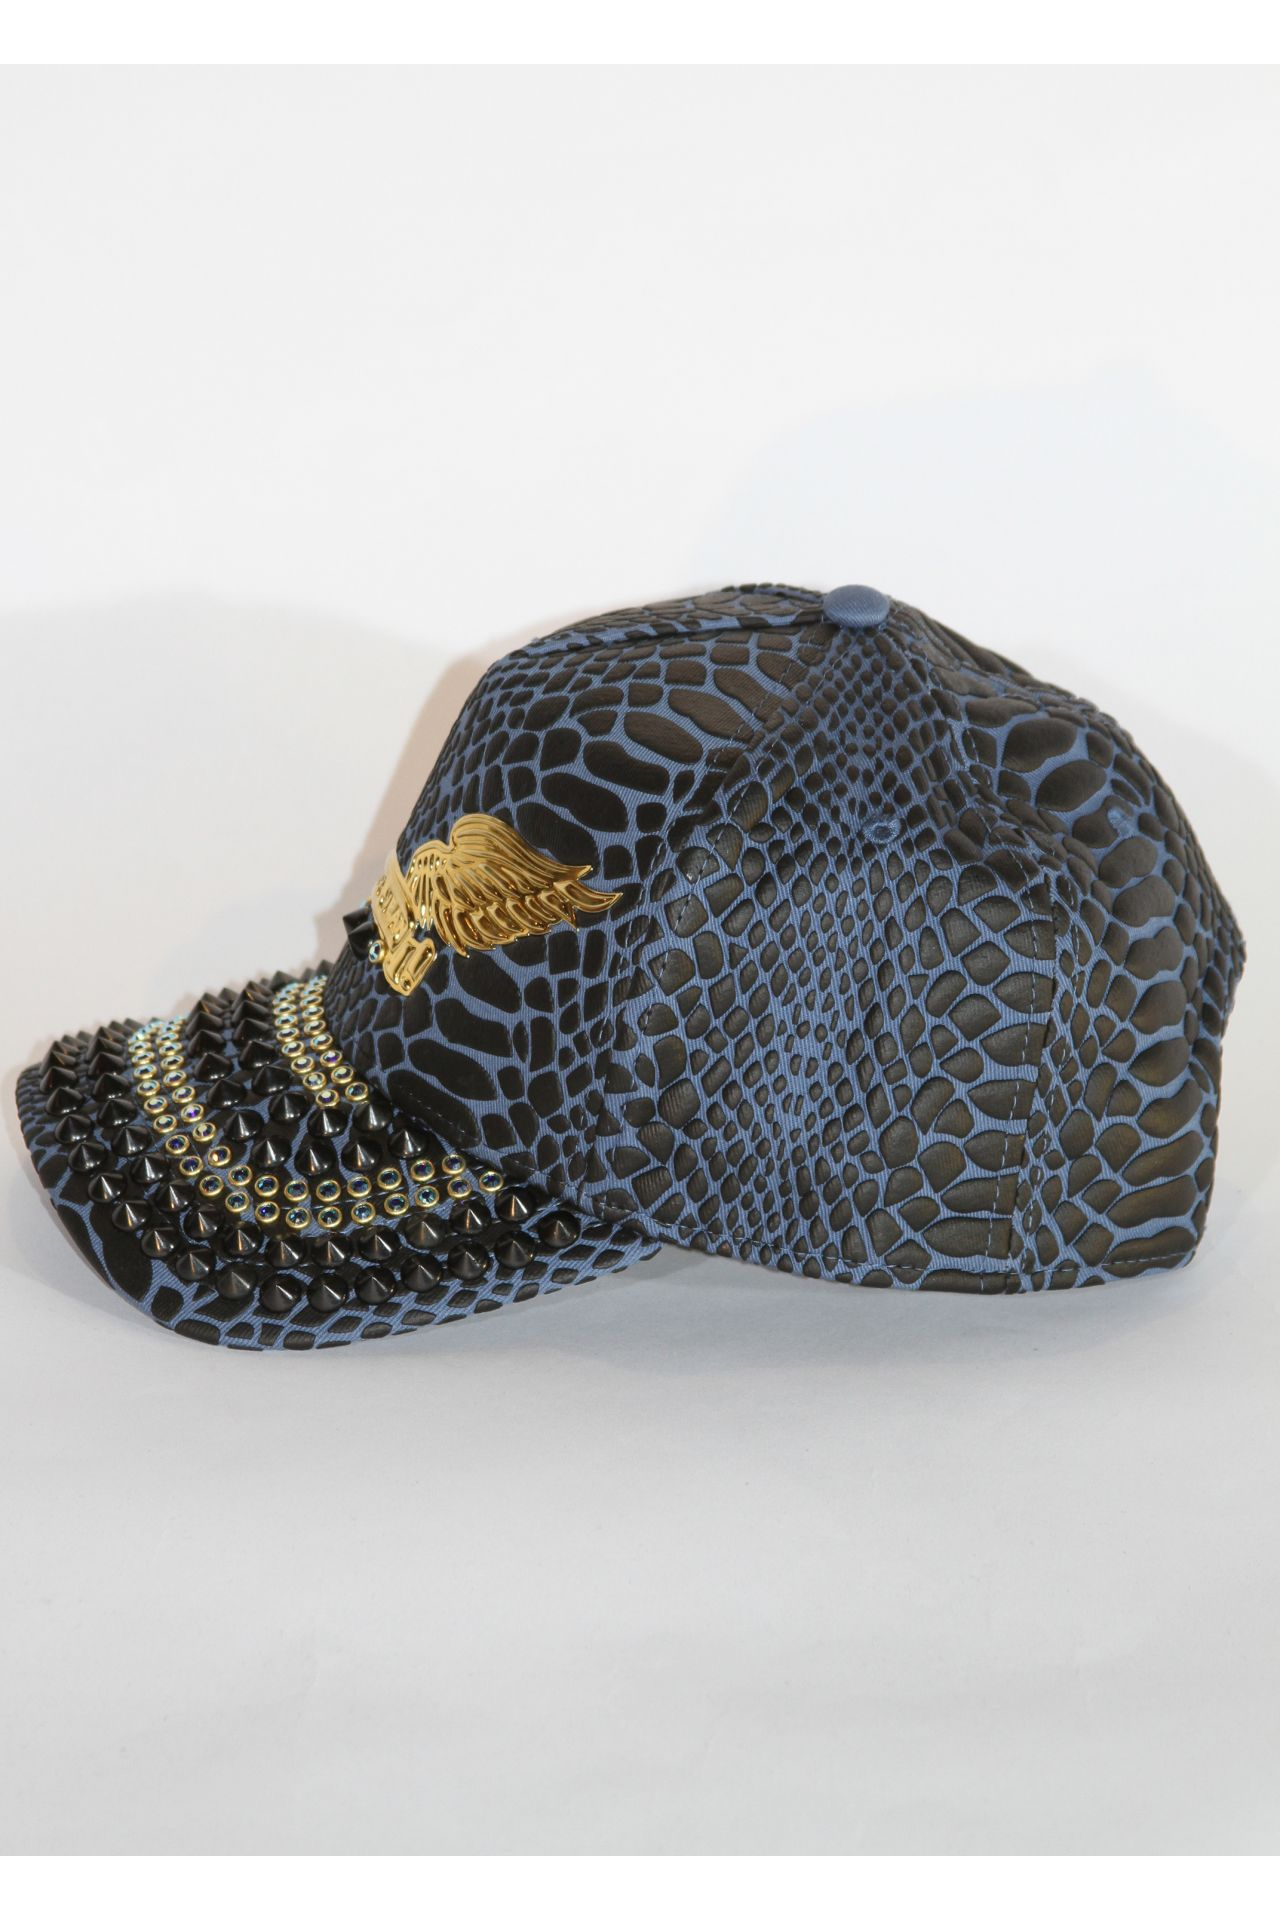 CRACKLE HAT IN BLUE BLACK WITH SAPPHIRE SW